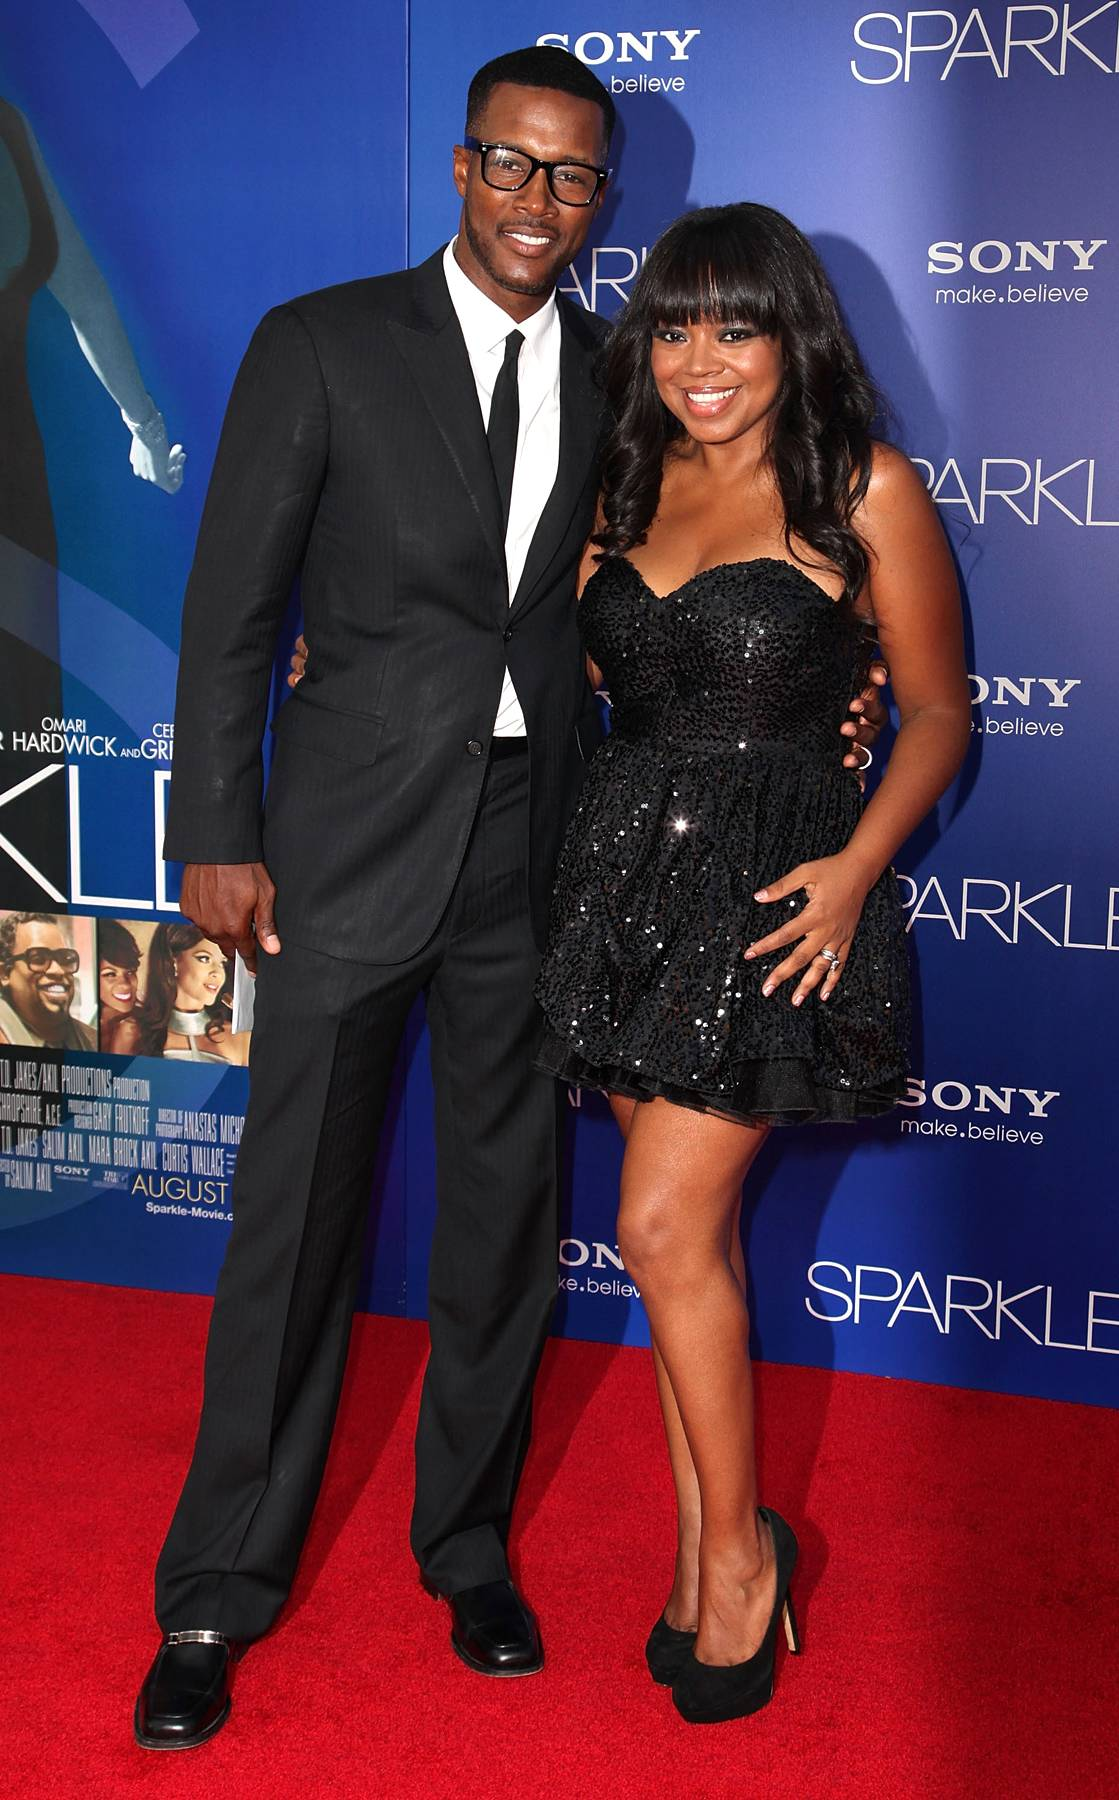 Flex and Shanice - One on One star Flex Alexander and '90s R&B singer Shanice take on the world together while facing various obstacles in their careers. (Photo: WENN)